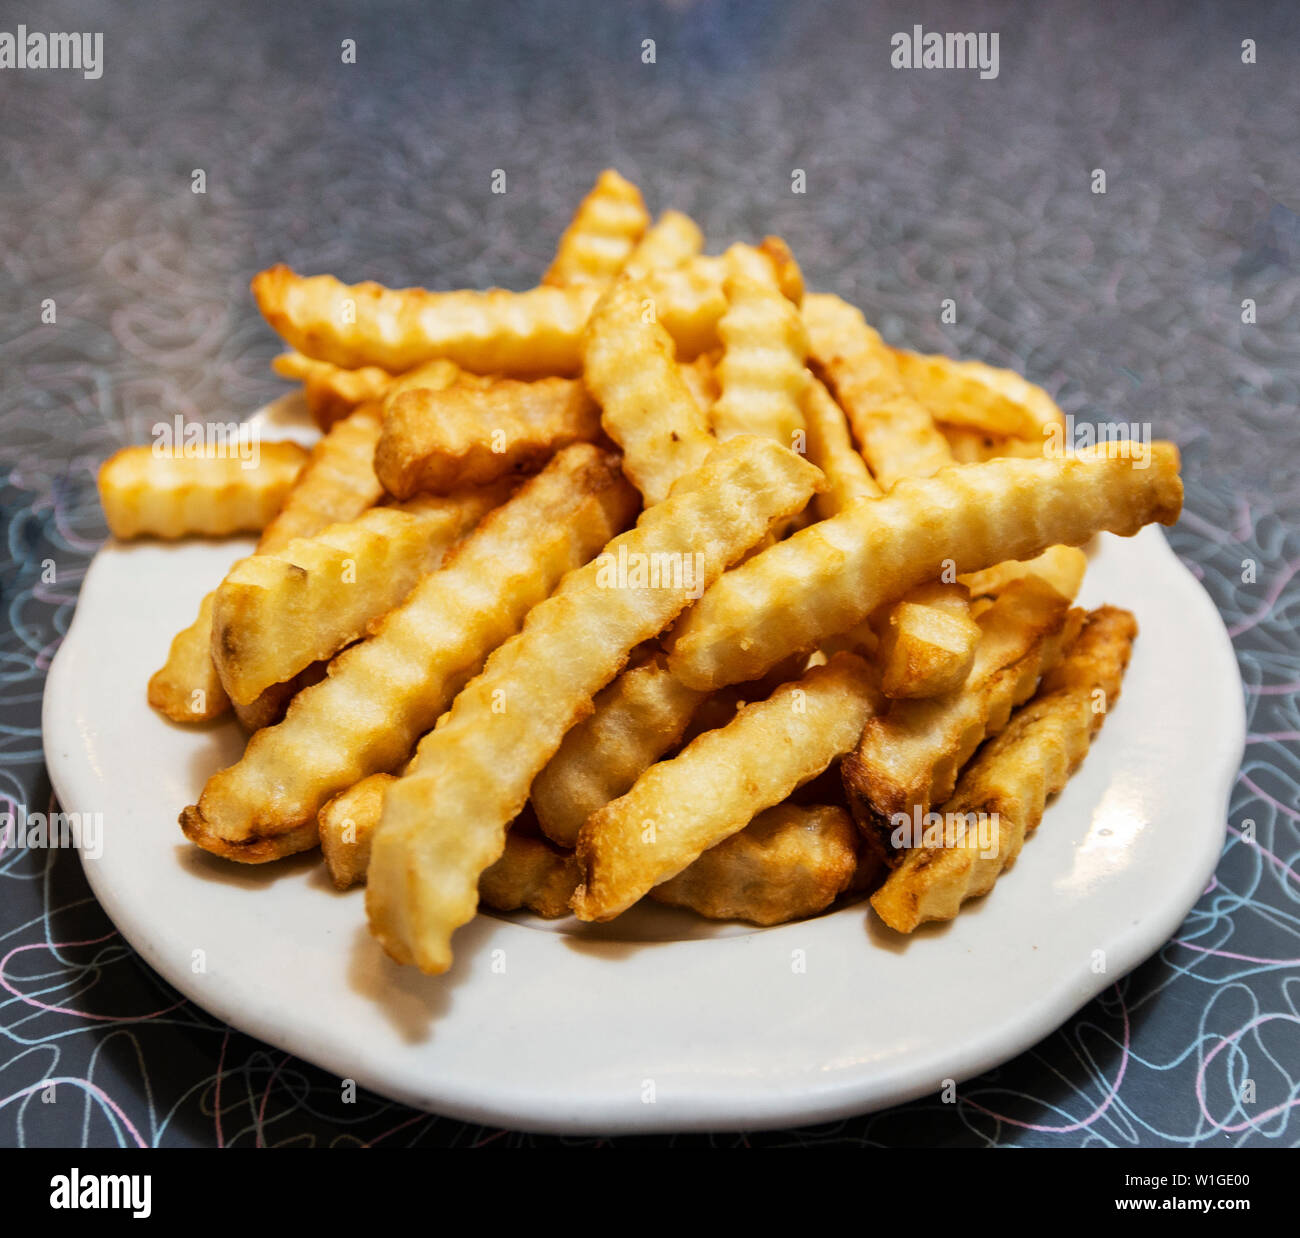 A white plate with golden thick cut french fries on a dinner table. - Stock Image